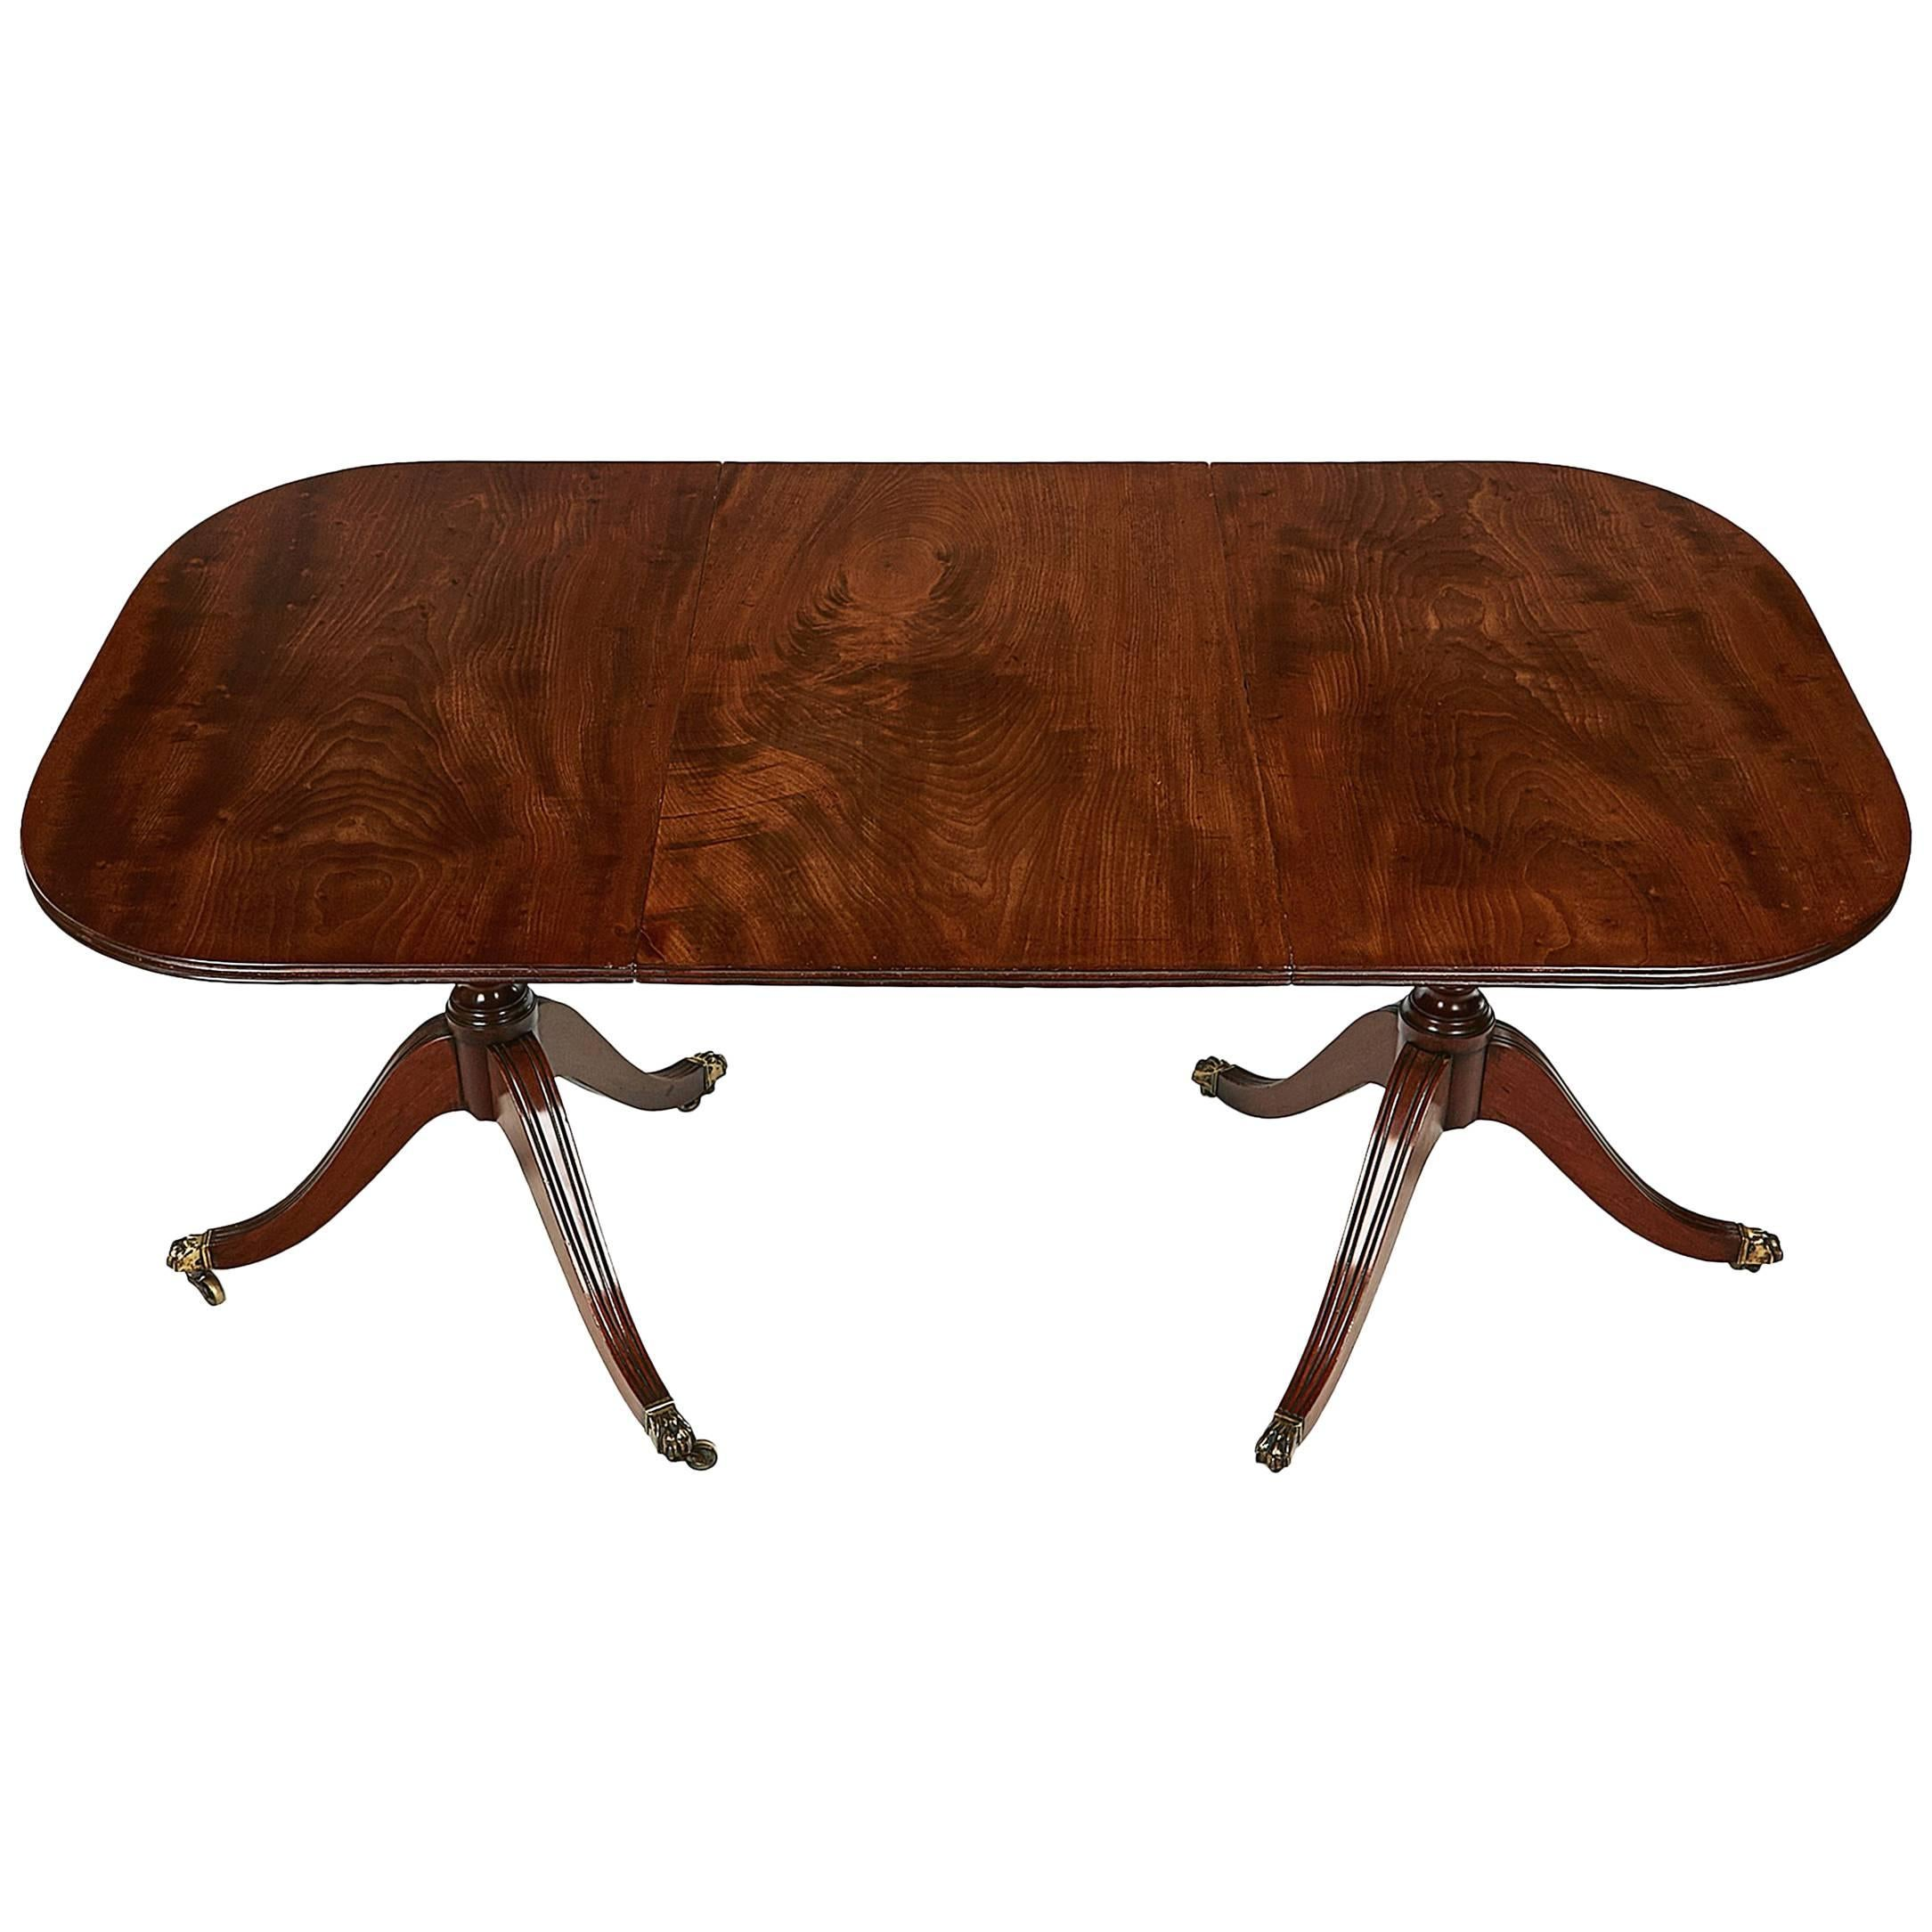 Early 19th Century George III Mahogany Table with One Expanding Leaf